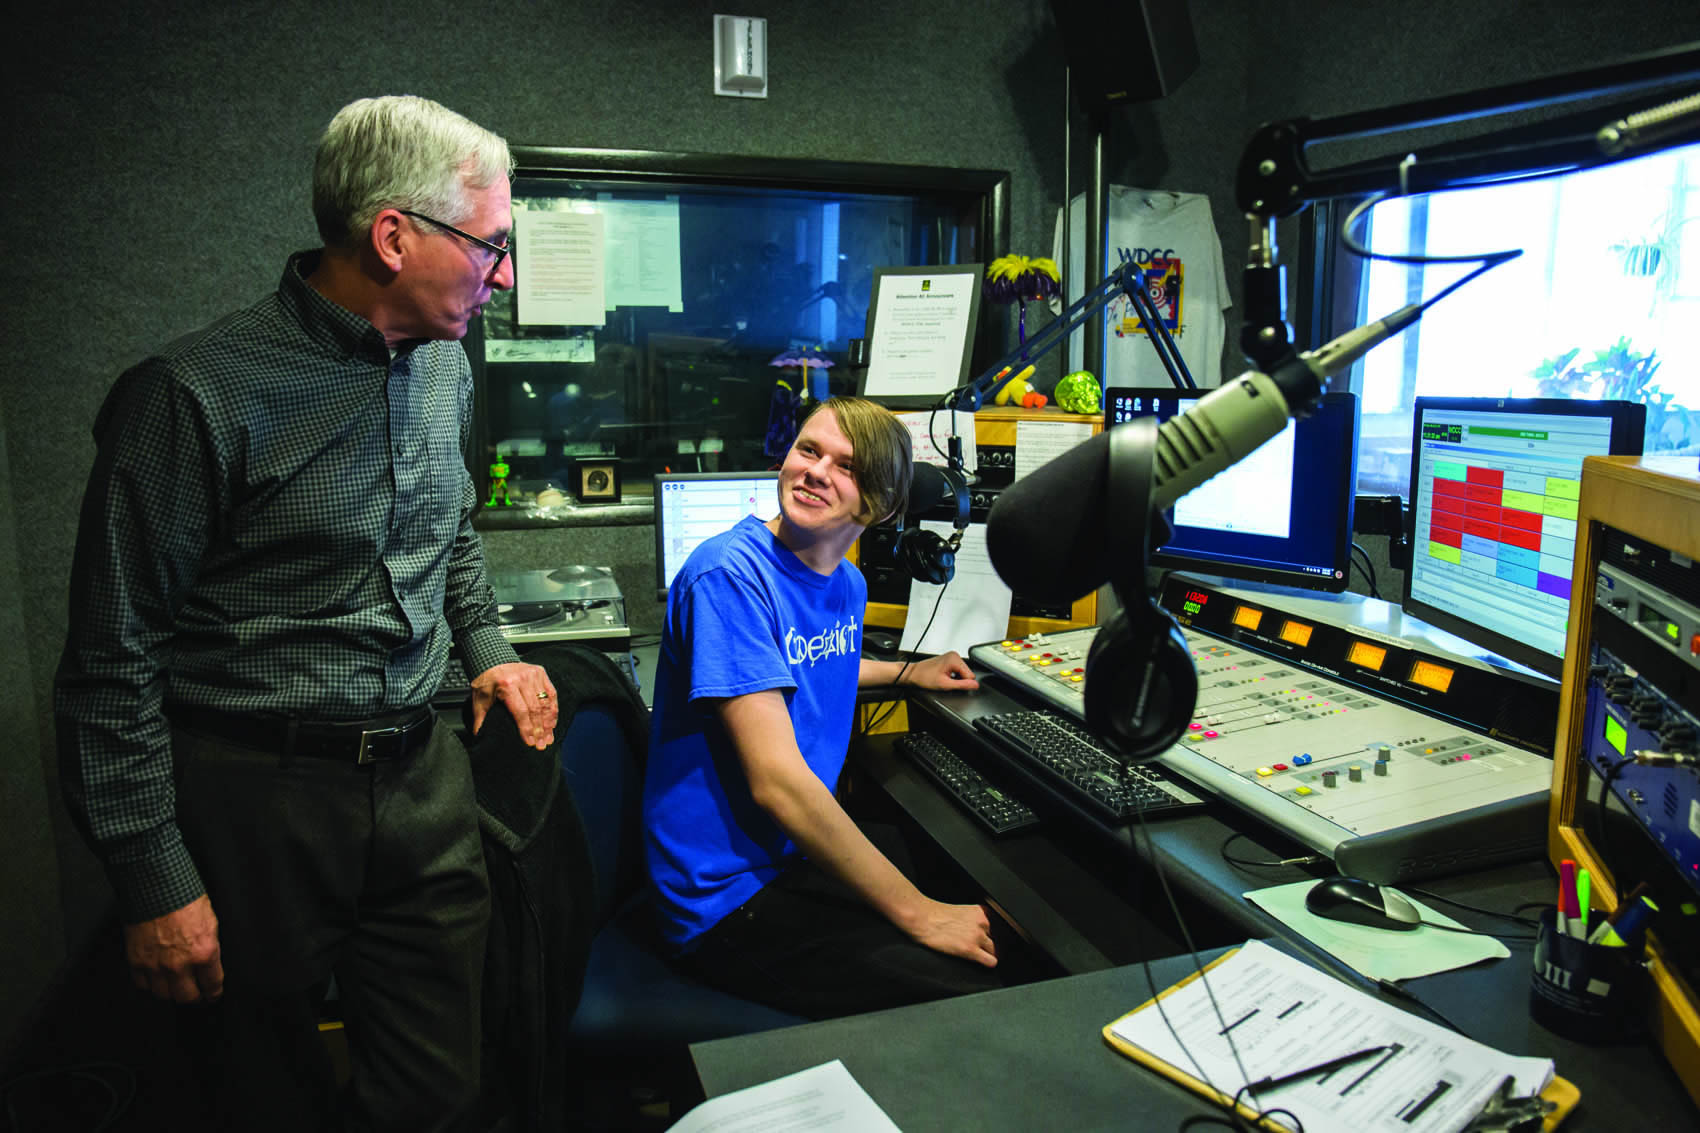 Read the full story, CCCC's broadcast production program is 'on air'